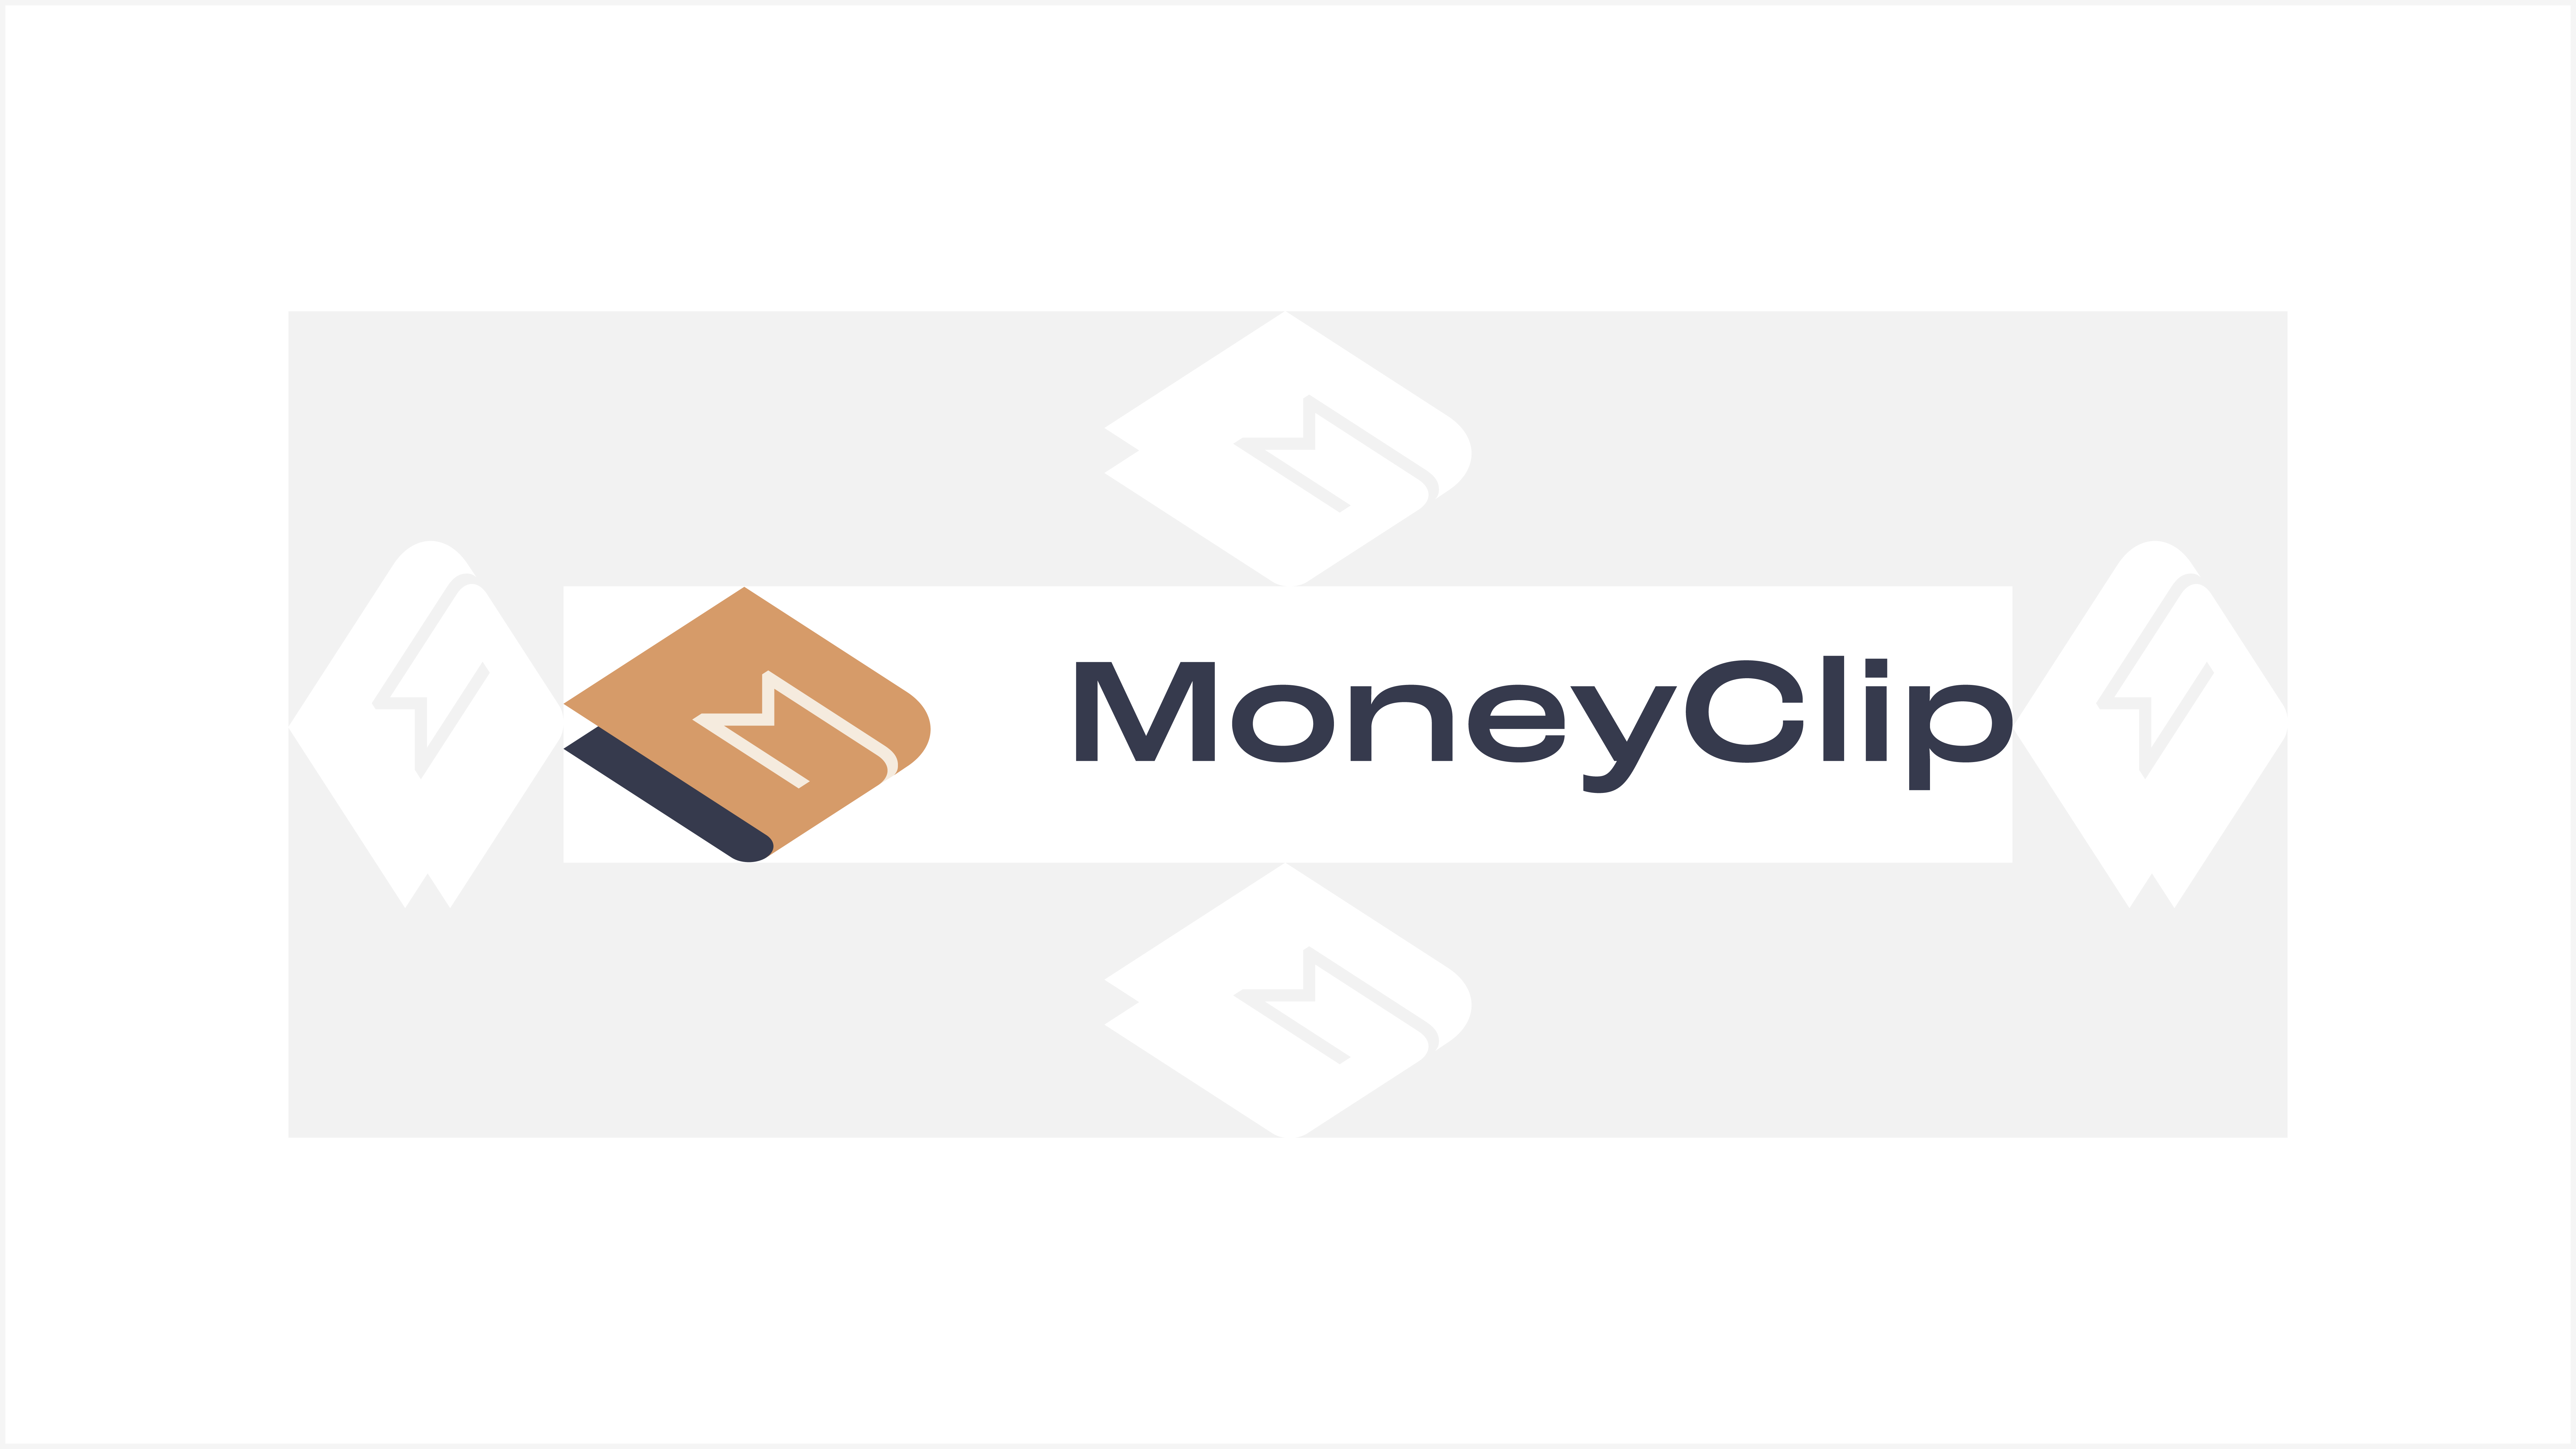 moneyclip-logo-clearspace-a